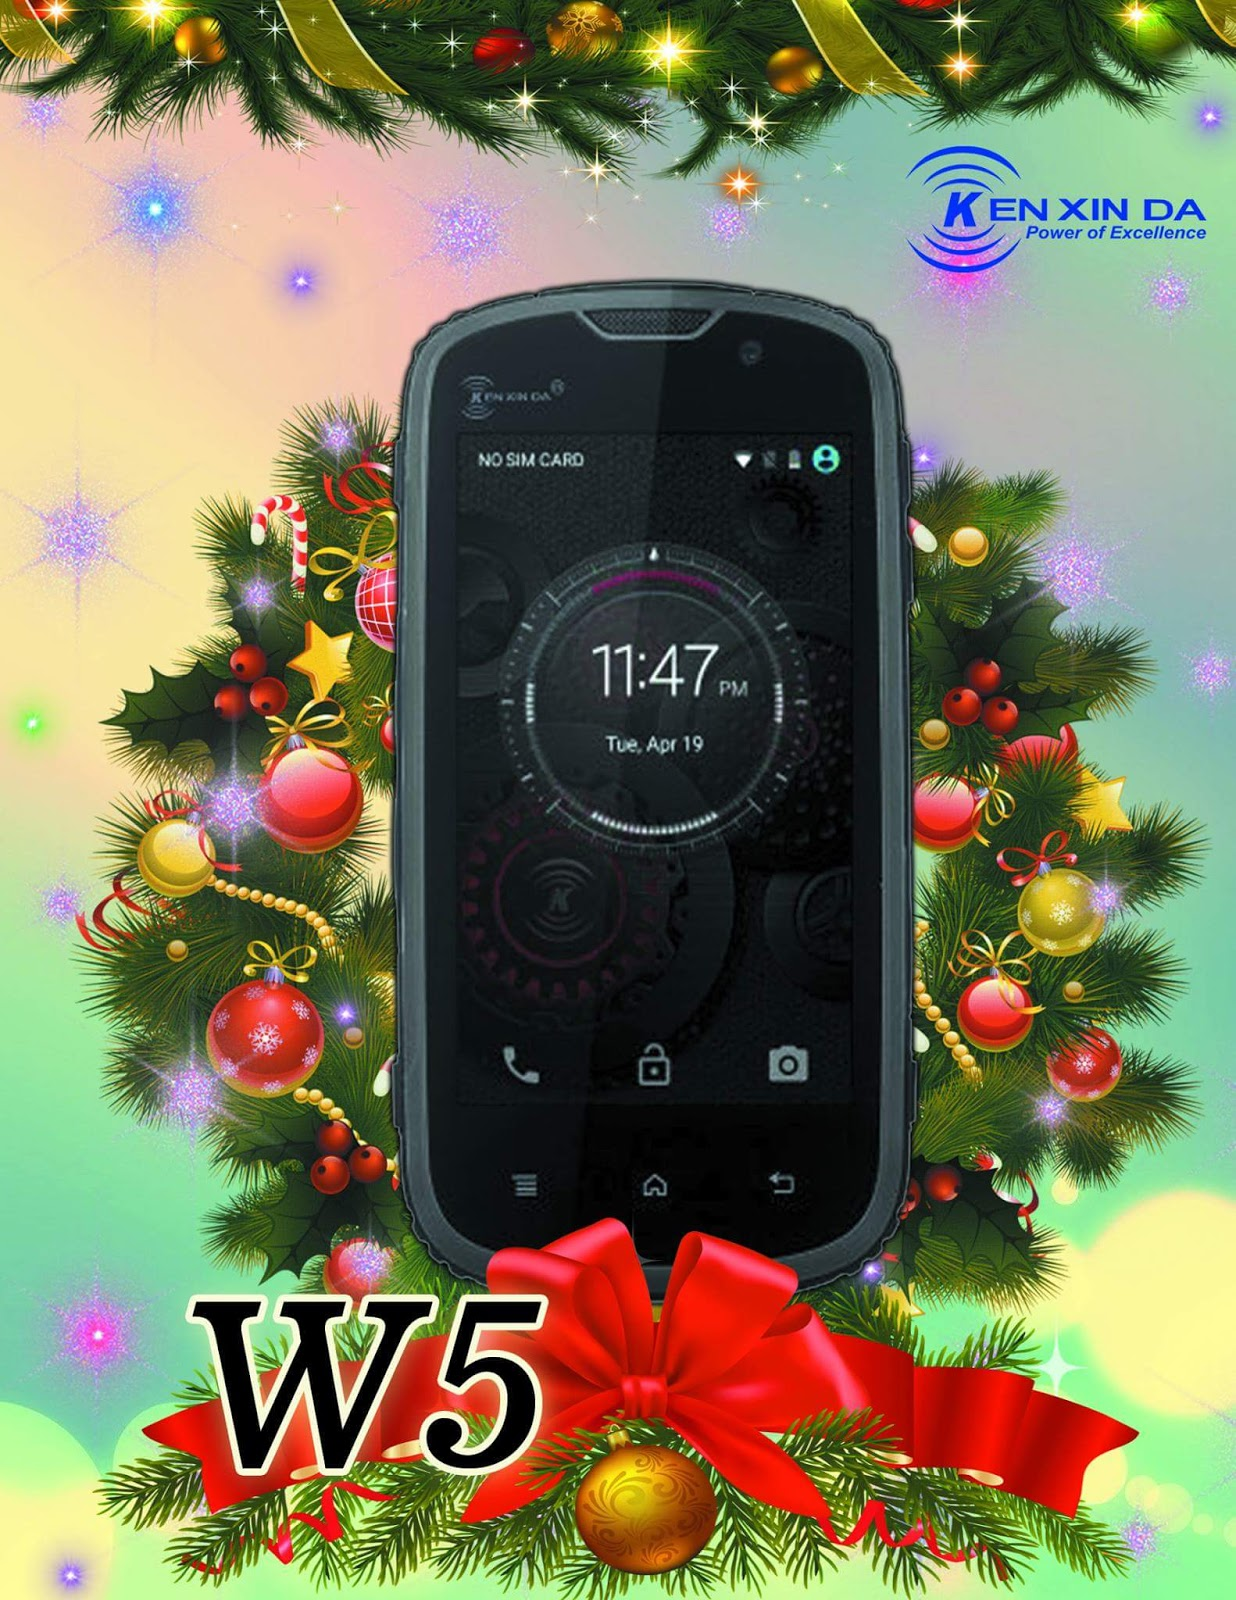 Ken Xin Da W5, W6, W7 Android Phones Announced, All With MT6735 SoC